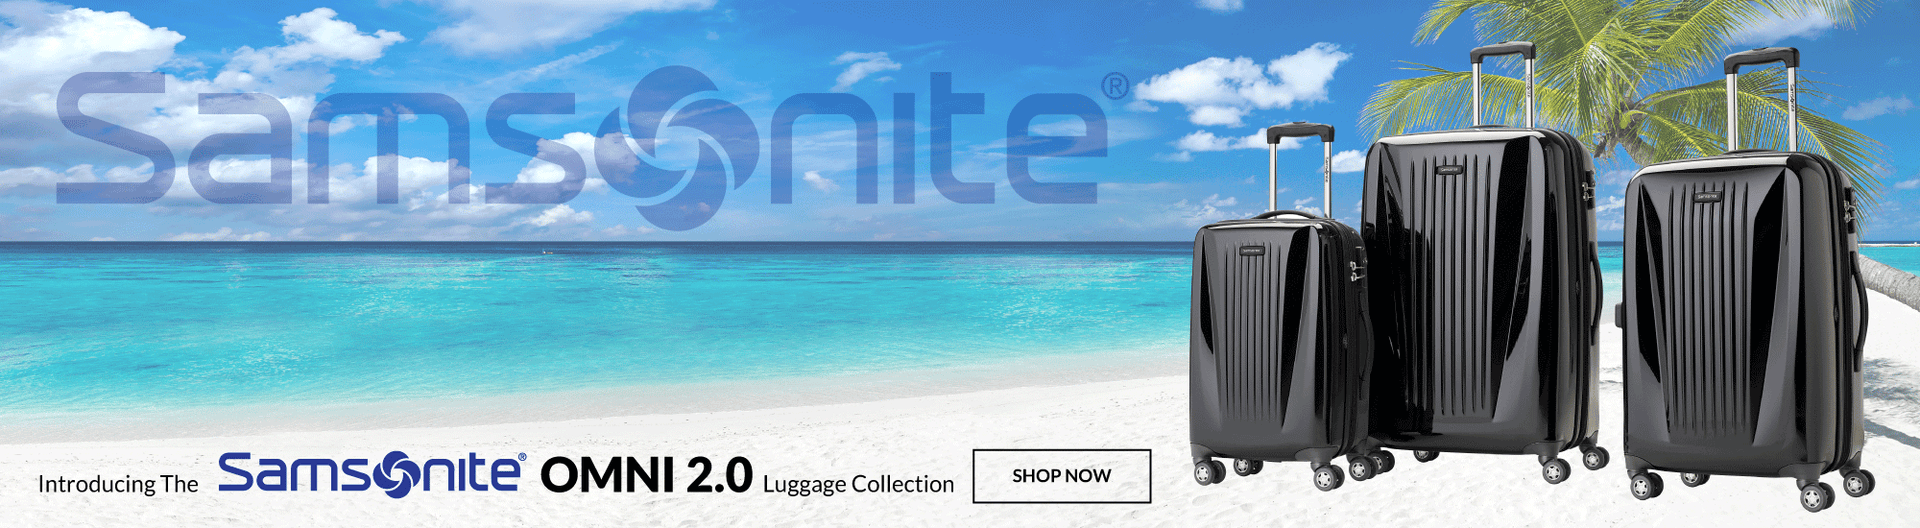 Samsonite Omni 2.0 Luggage Sale - Canada Luggage Depot